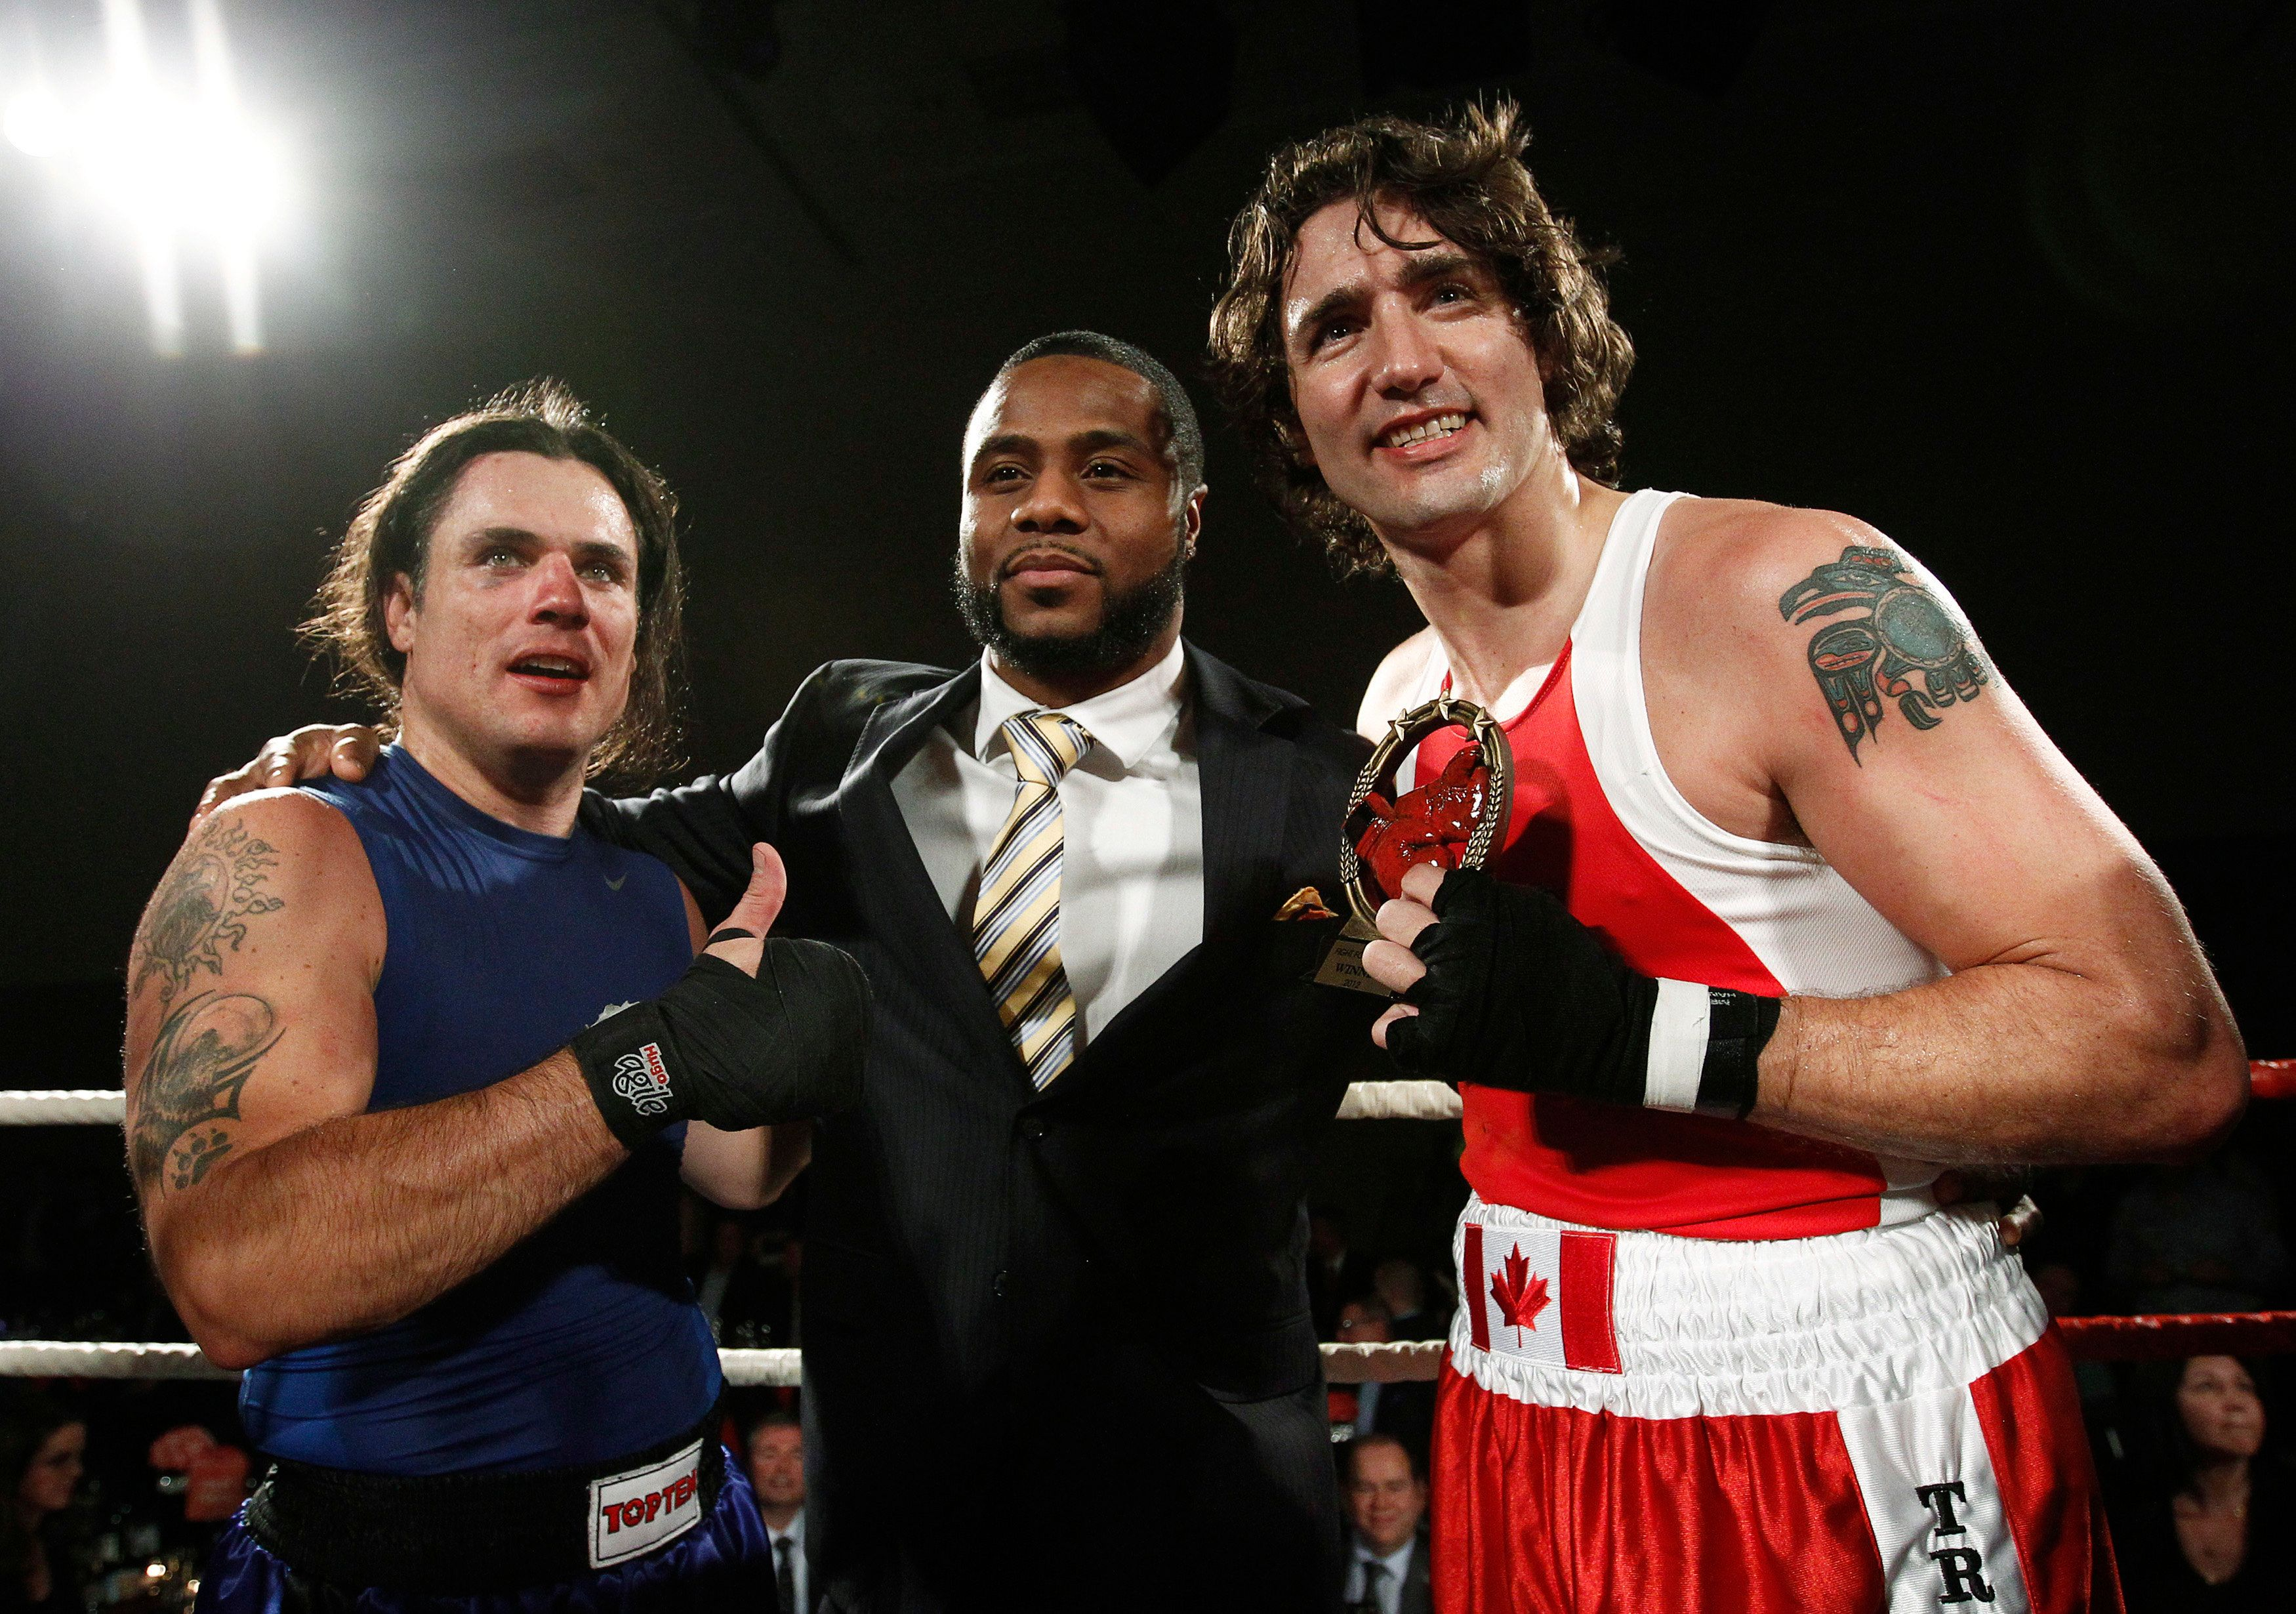 Trudeau (R) and conservative Senator Patrick Brazeau (L) pose after Trudeau defeated Brazeau during their charity boxing match in Ottawa March 31, 2012.